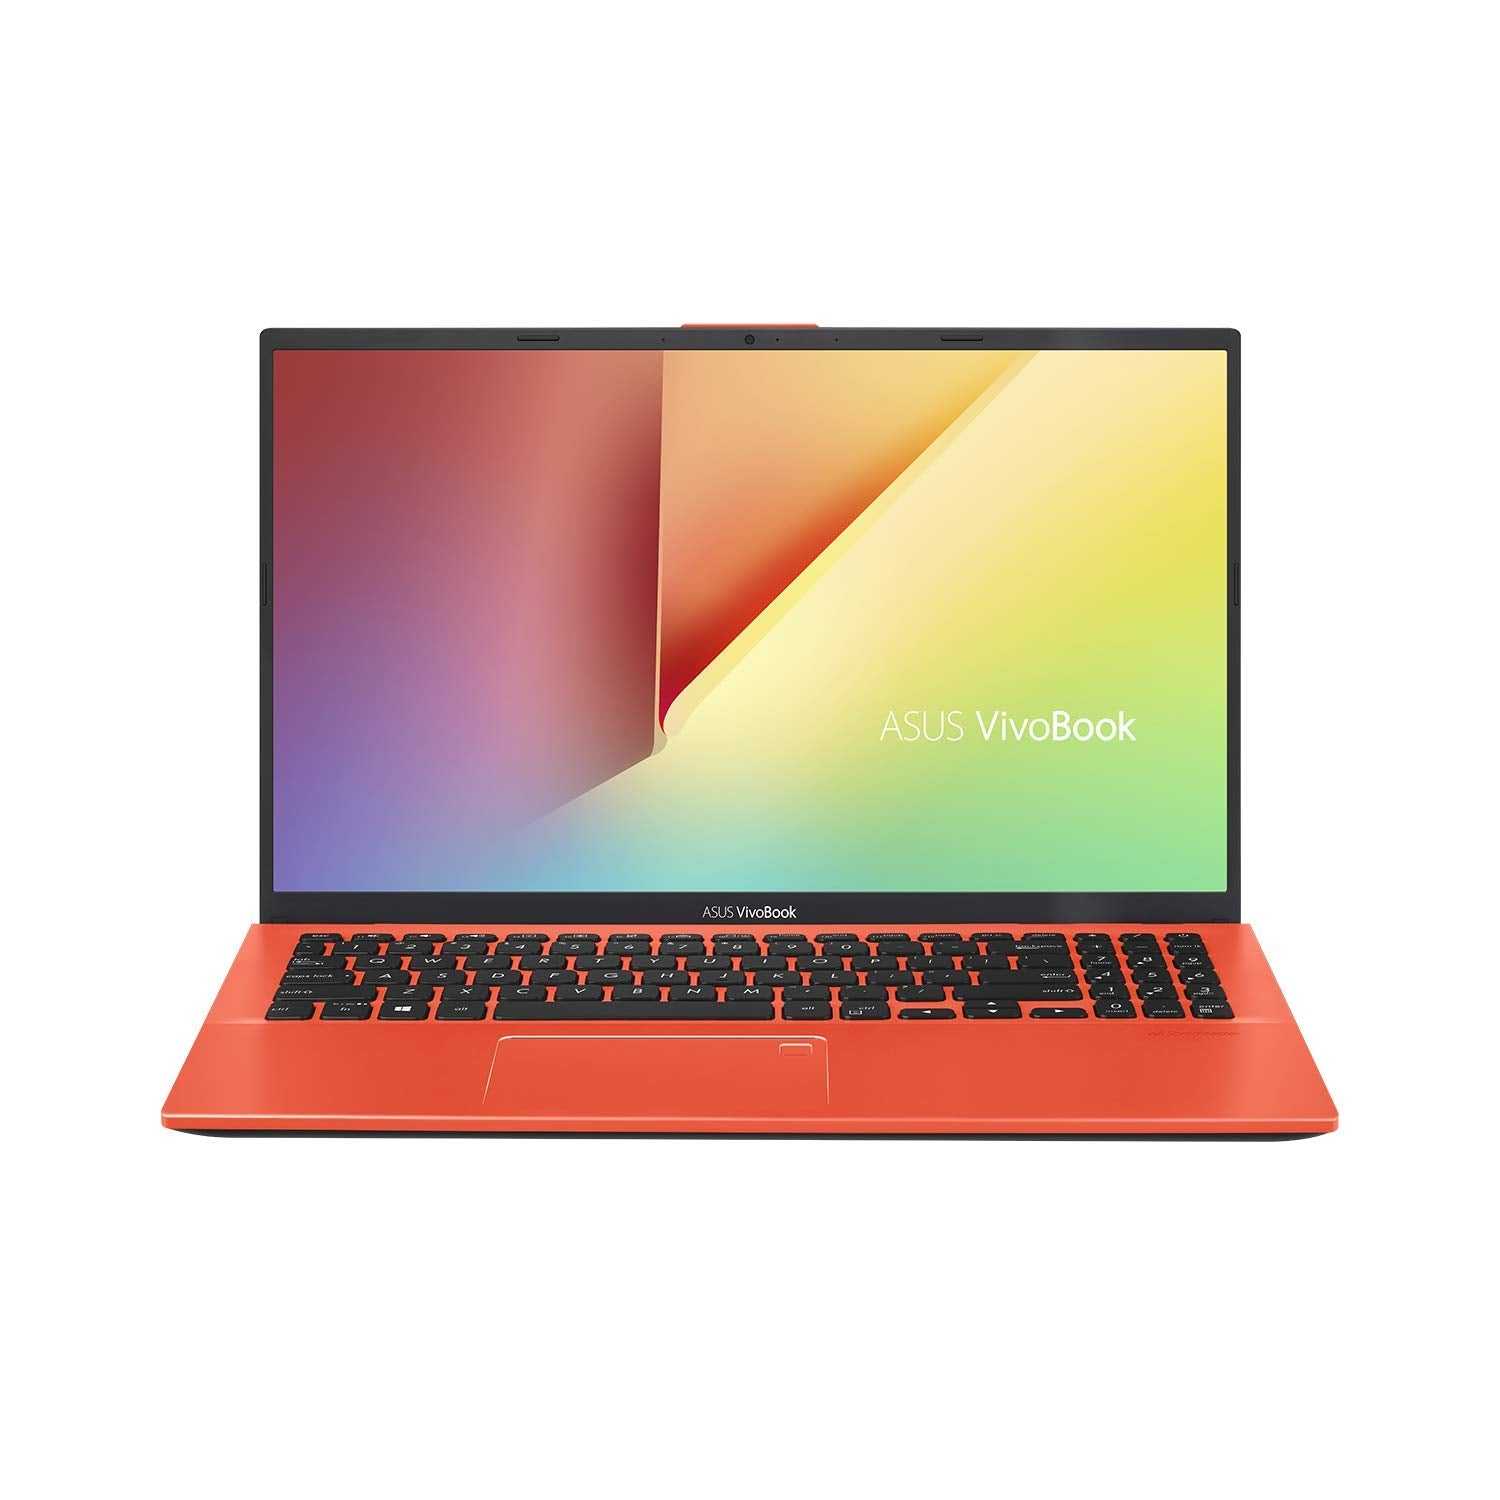 "Asus Vivobook 15 Thin and Light Laptop, 15.6"" Full HD, AMD Quad Core R5-3500U CPU, 8GB DDR4 RAM, 128GB SSD + 1TB HDD, AMD Radeon Vega 8 Graphics, Windows 10 Home, F512DA-EB55-SL, Transparent Silver"